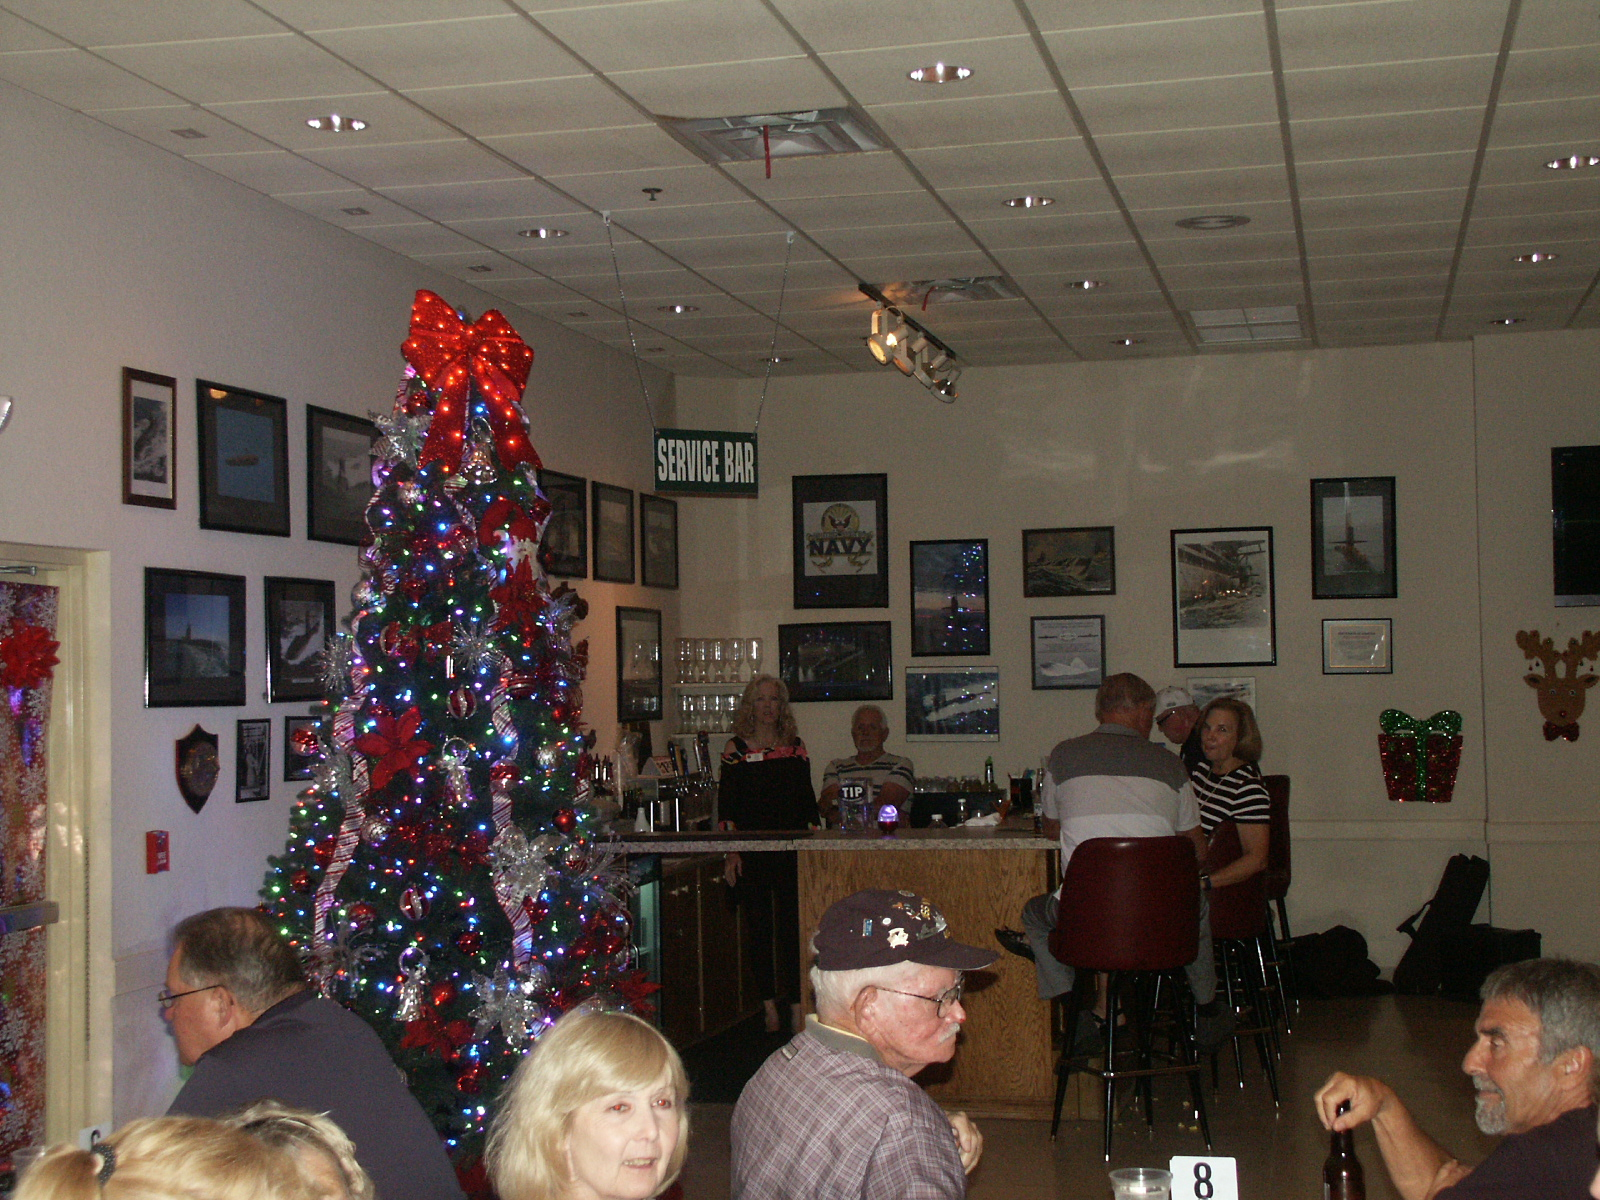 http://www.florida-legion.com/Images/backbar16.JPG